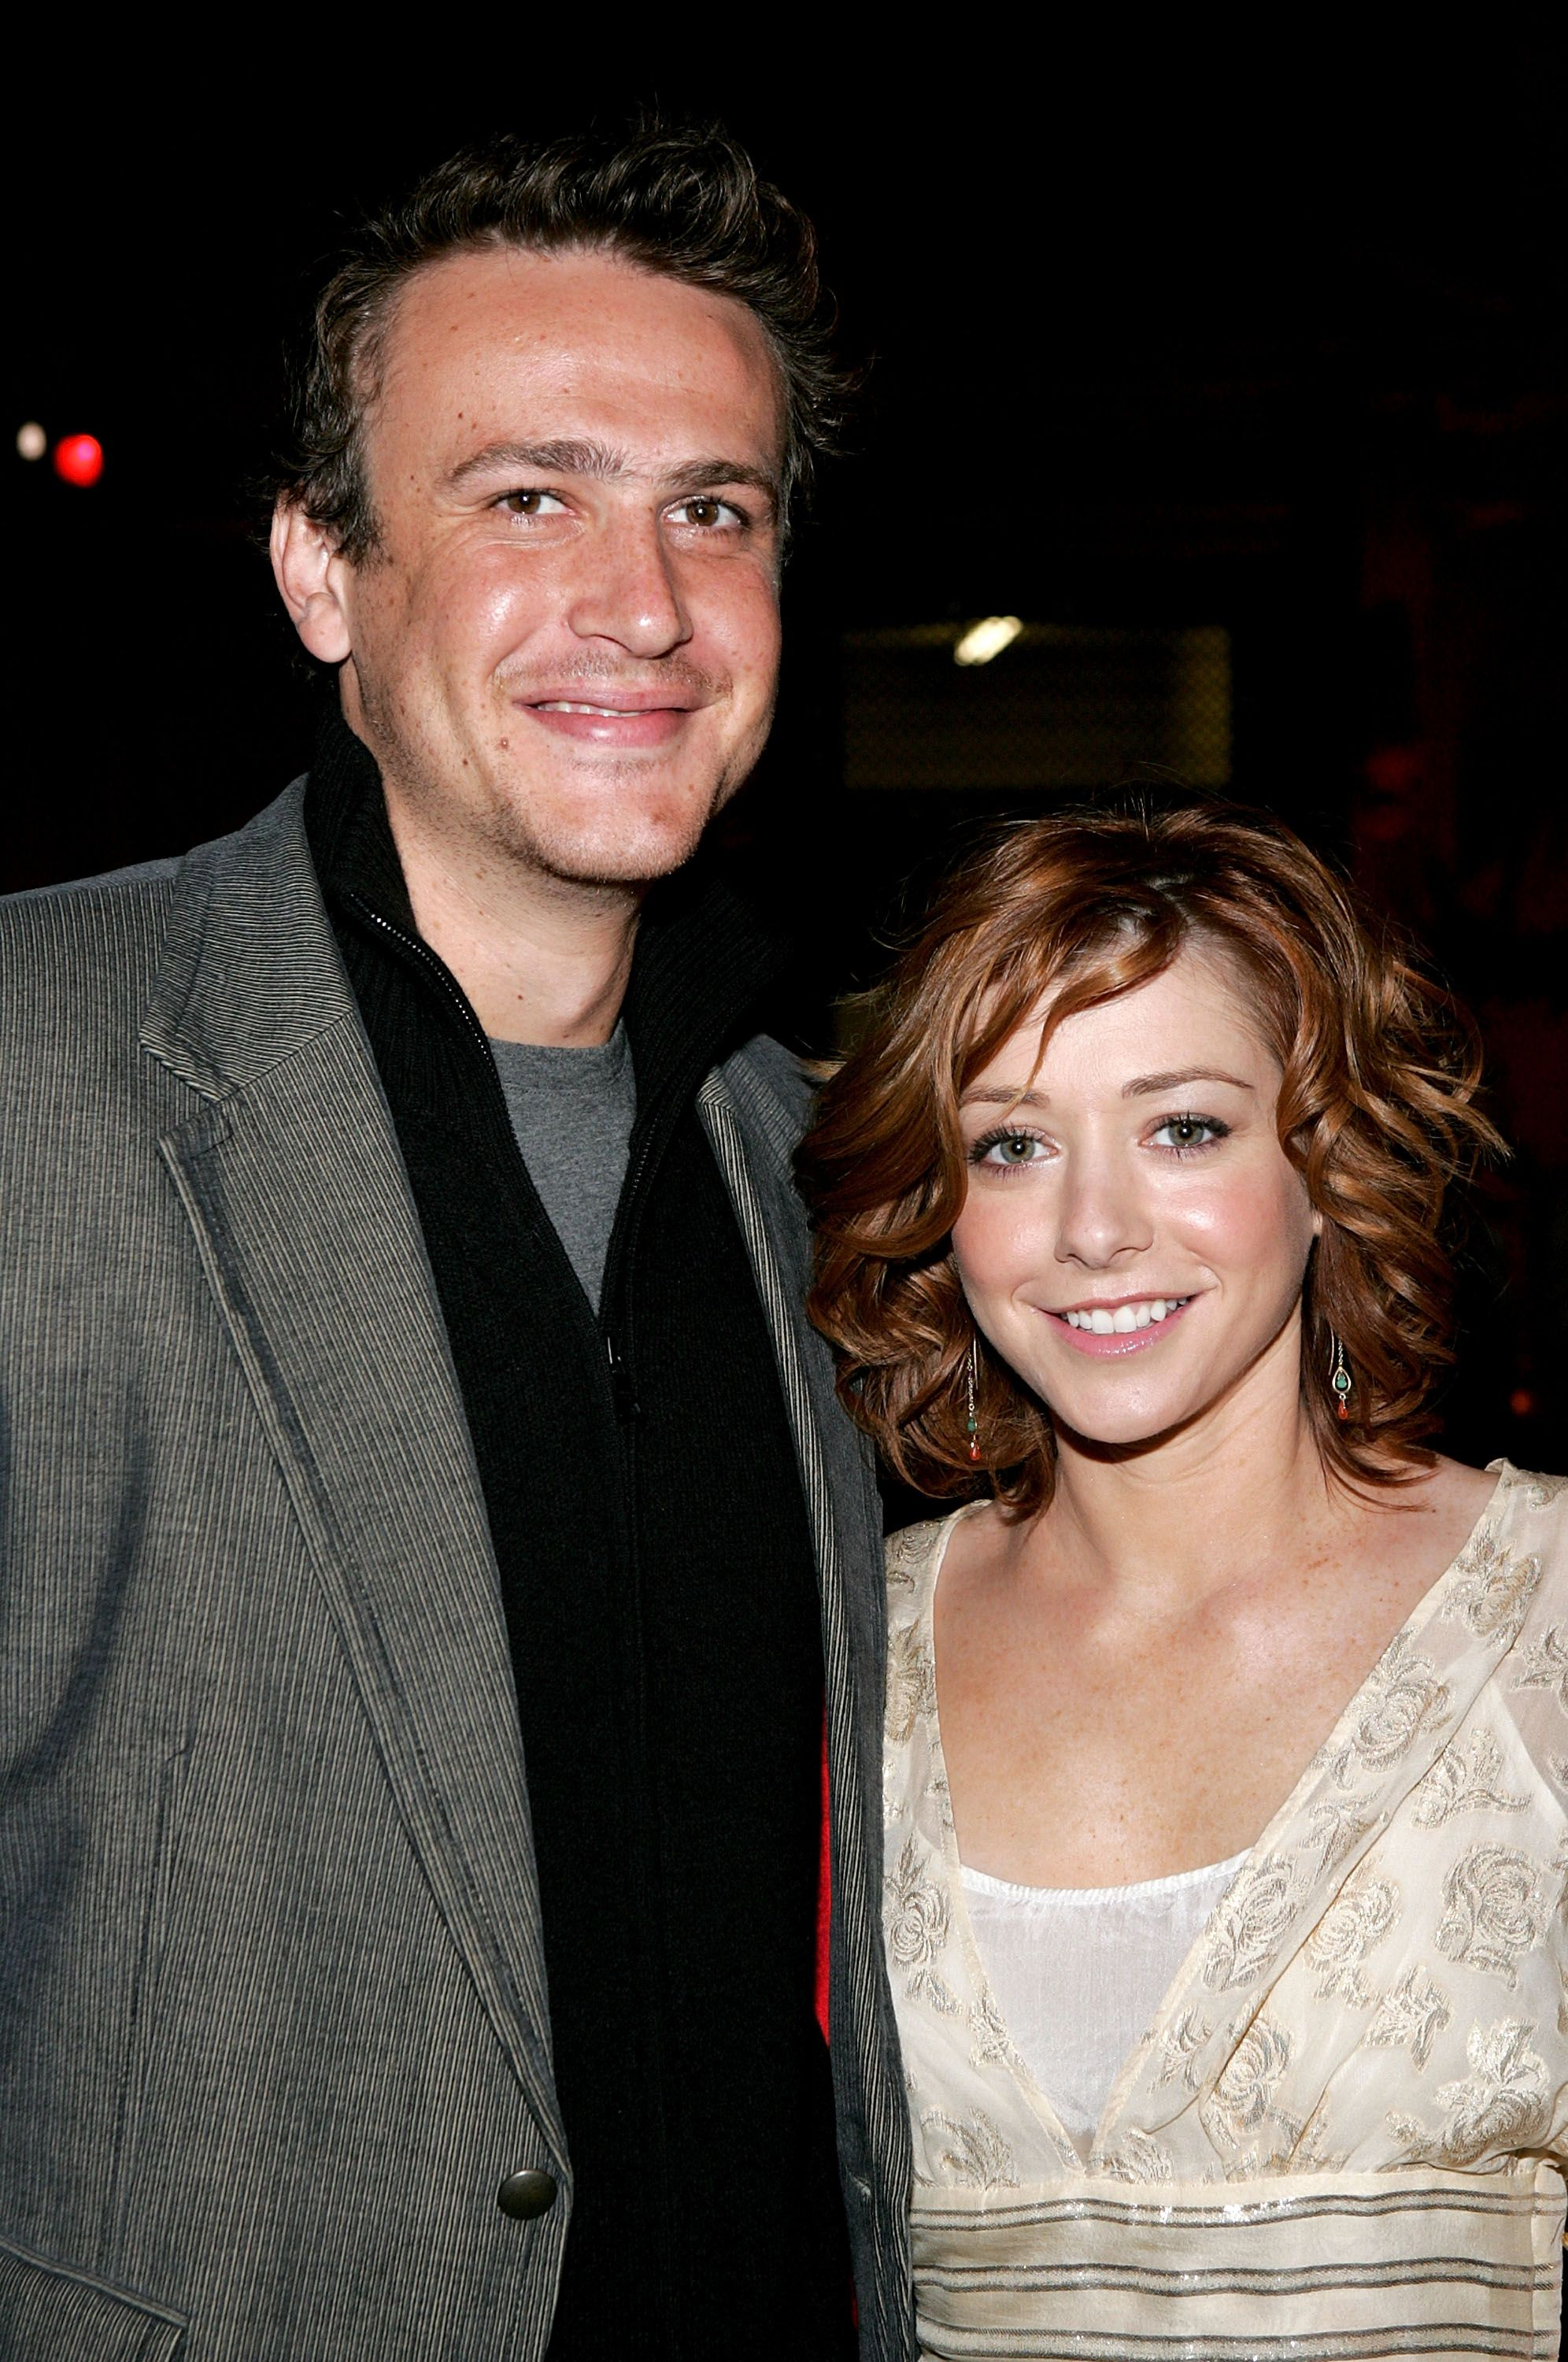 Alyson Hannigan also starred in How I Met Your Mother / Getty Images